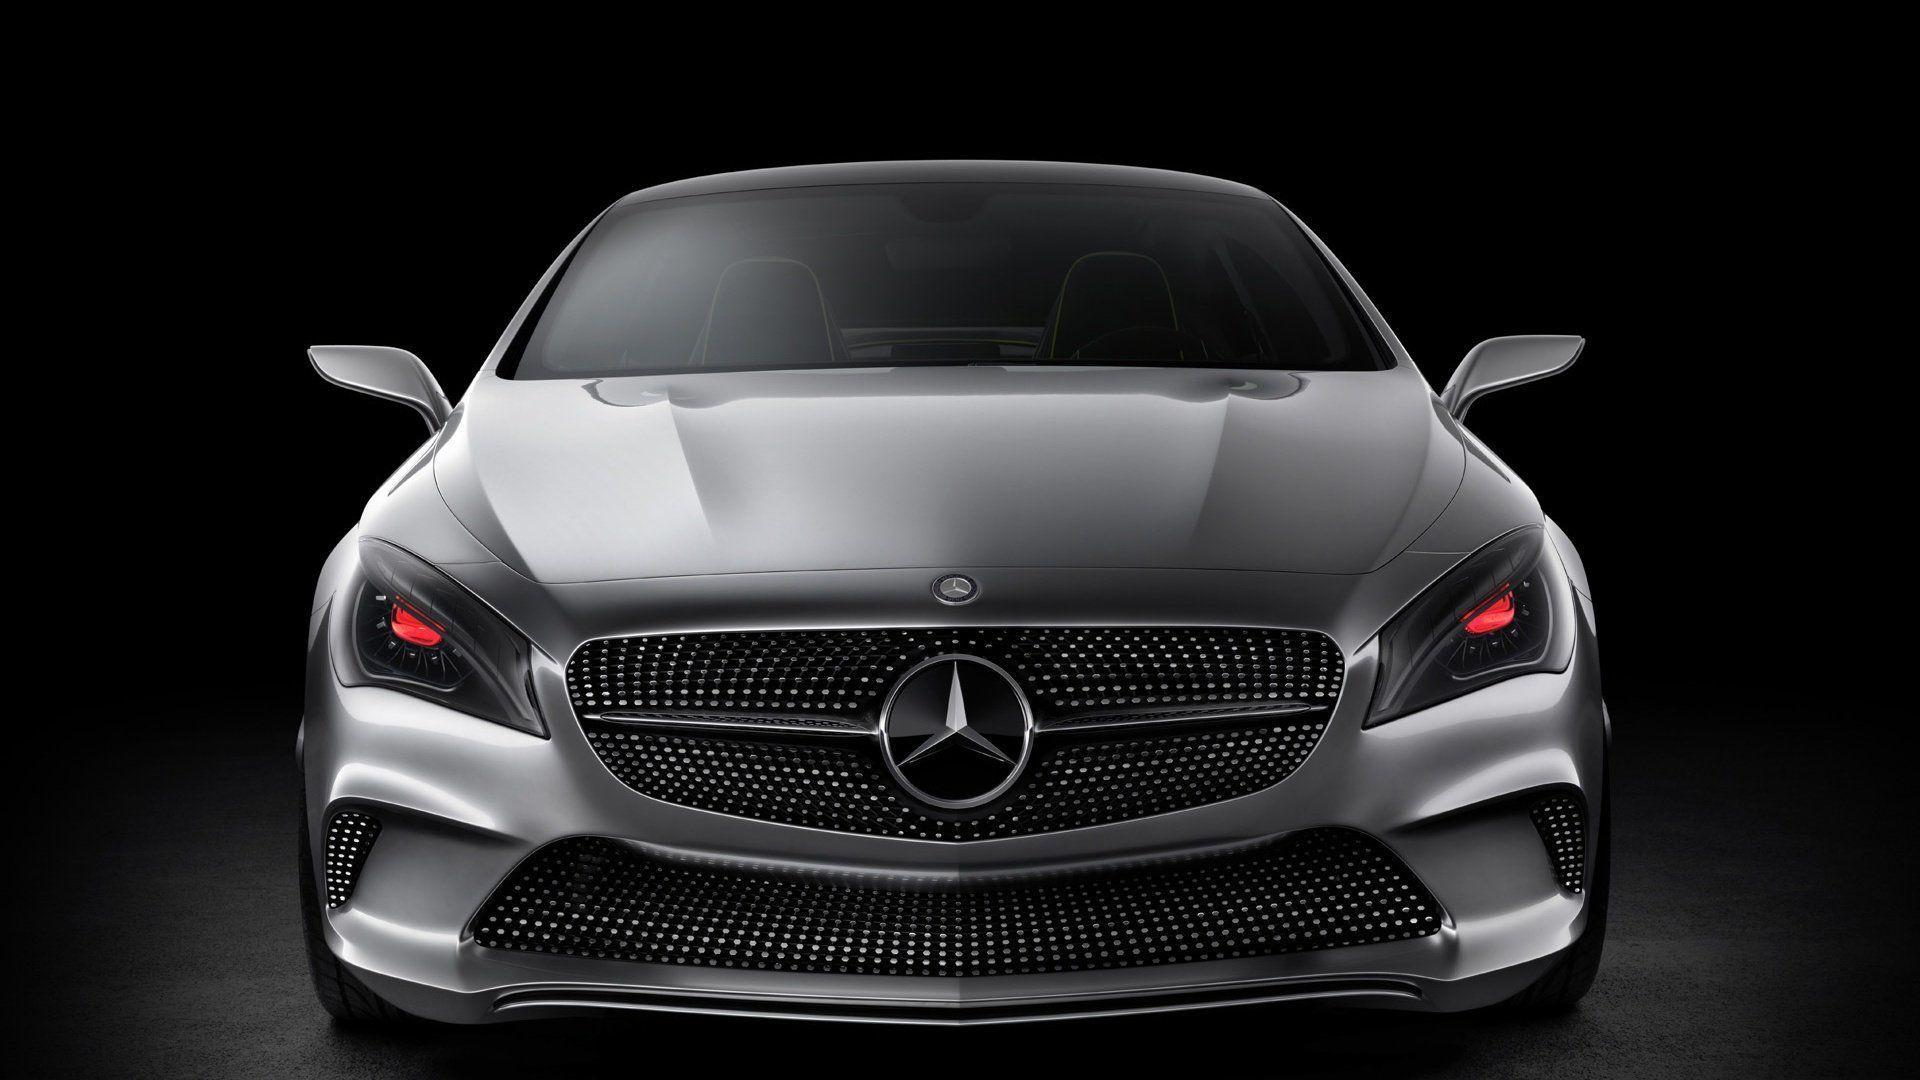 Mercedes Benz Concept Style Coupe Wallpapers